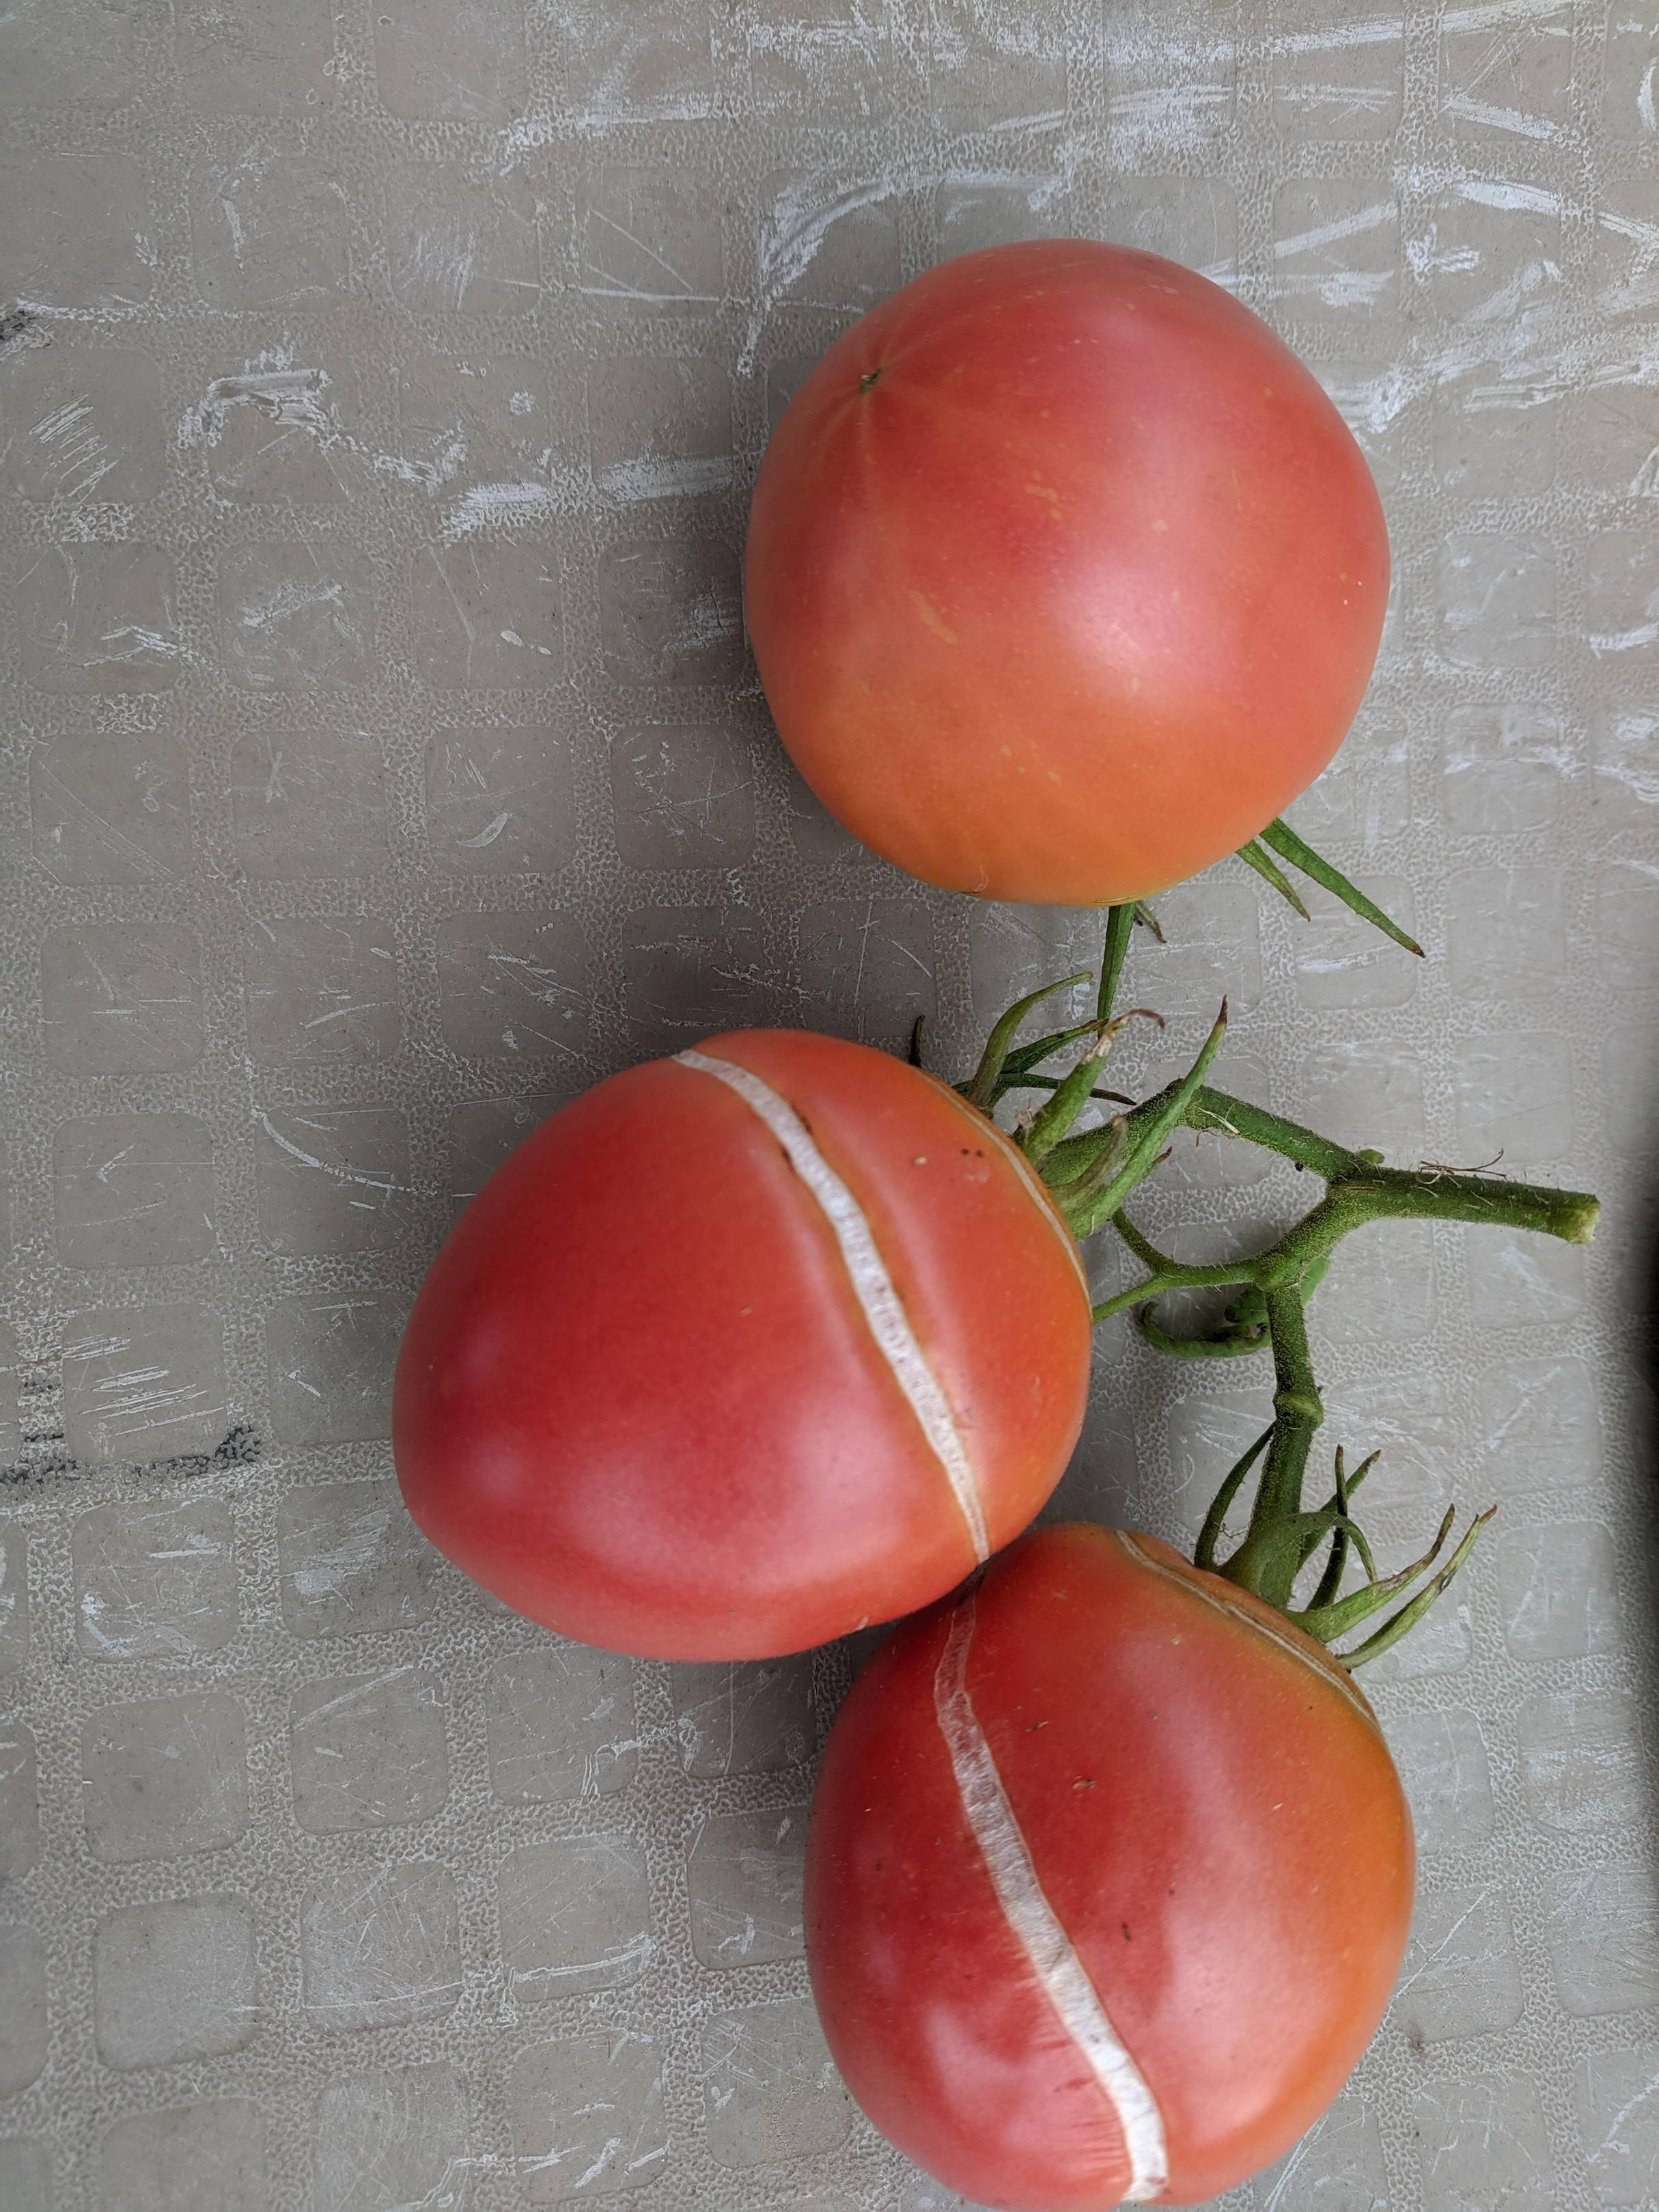 anyone tell me what's going on with my tomato's?Can anyone tell me what's going on with my tomato's?